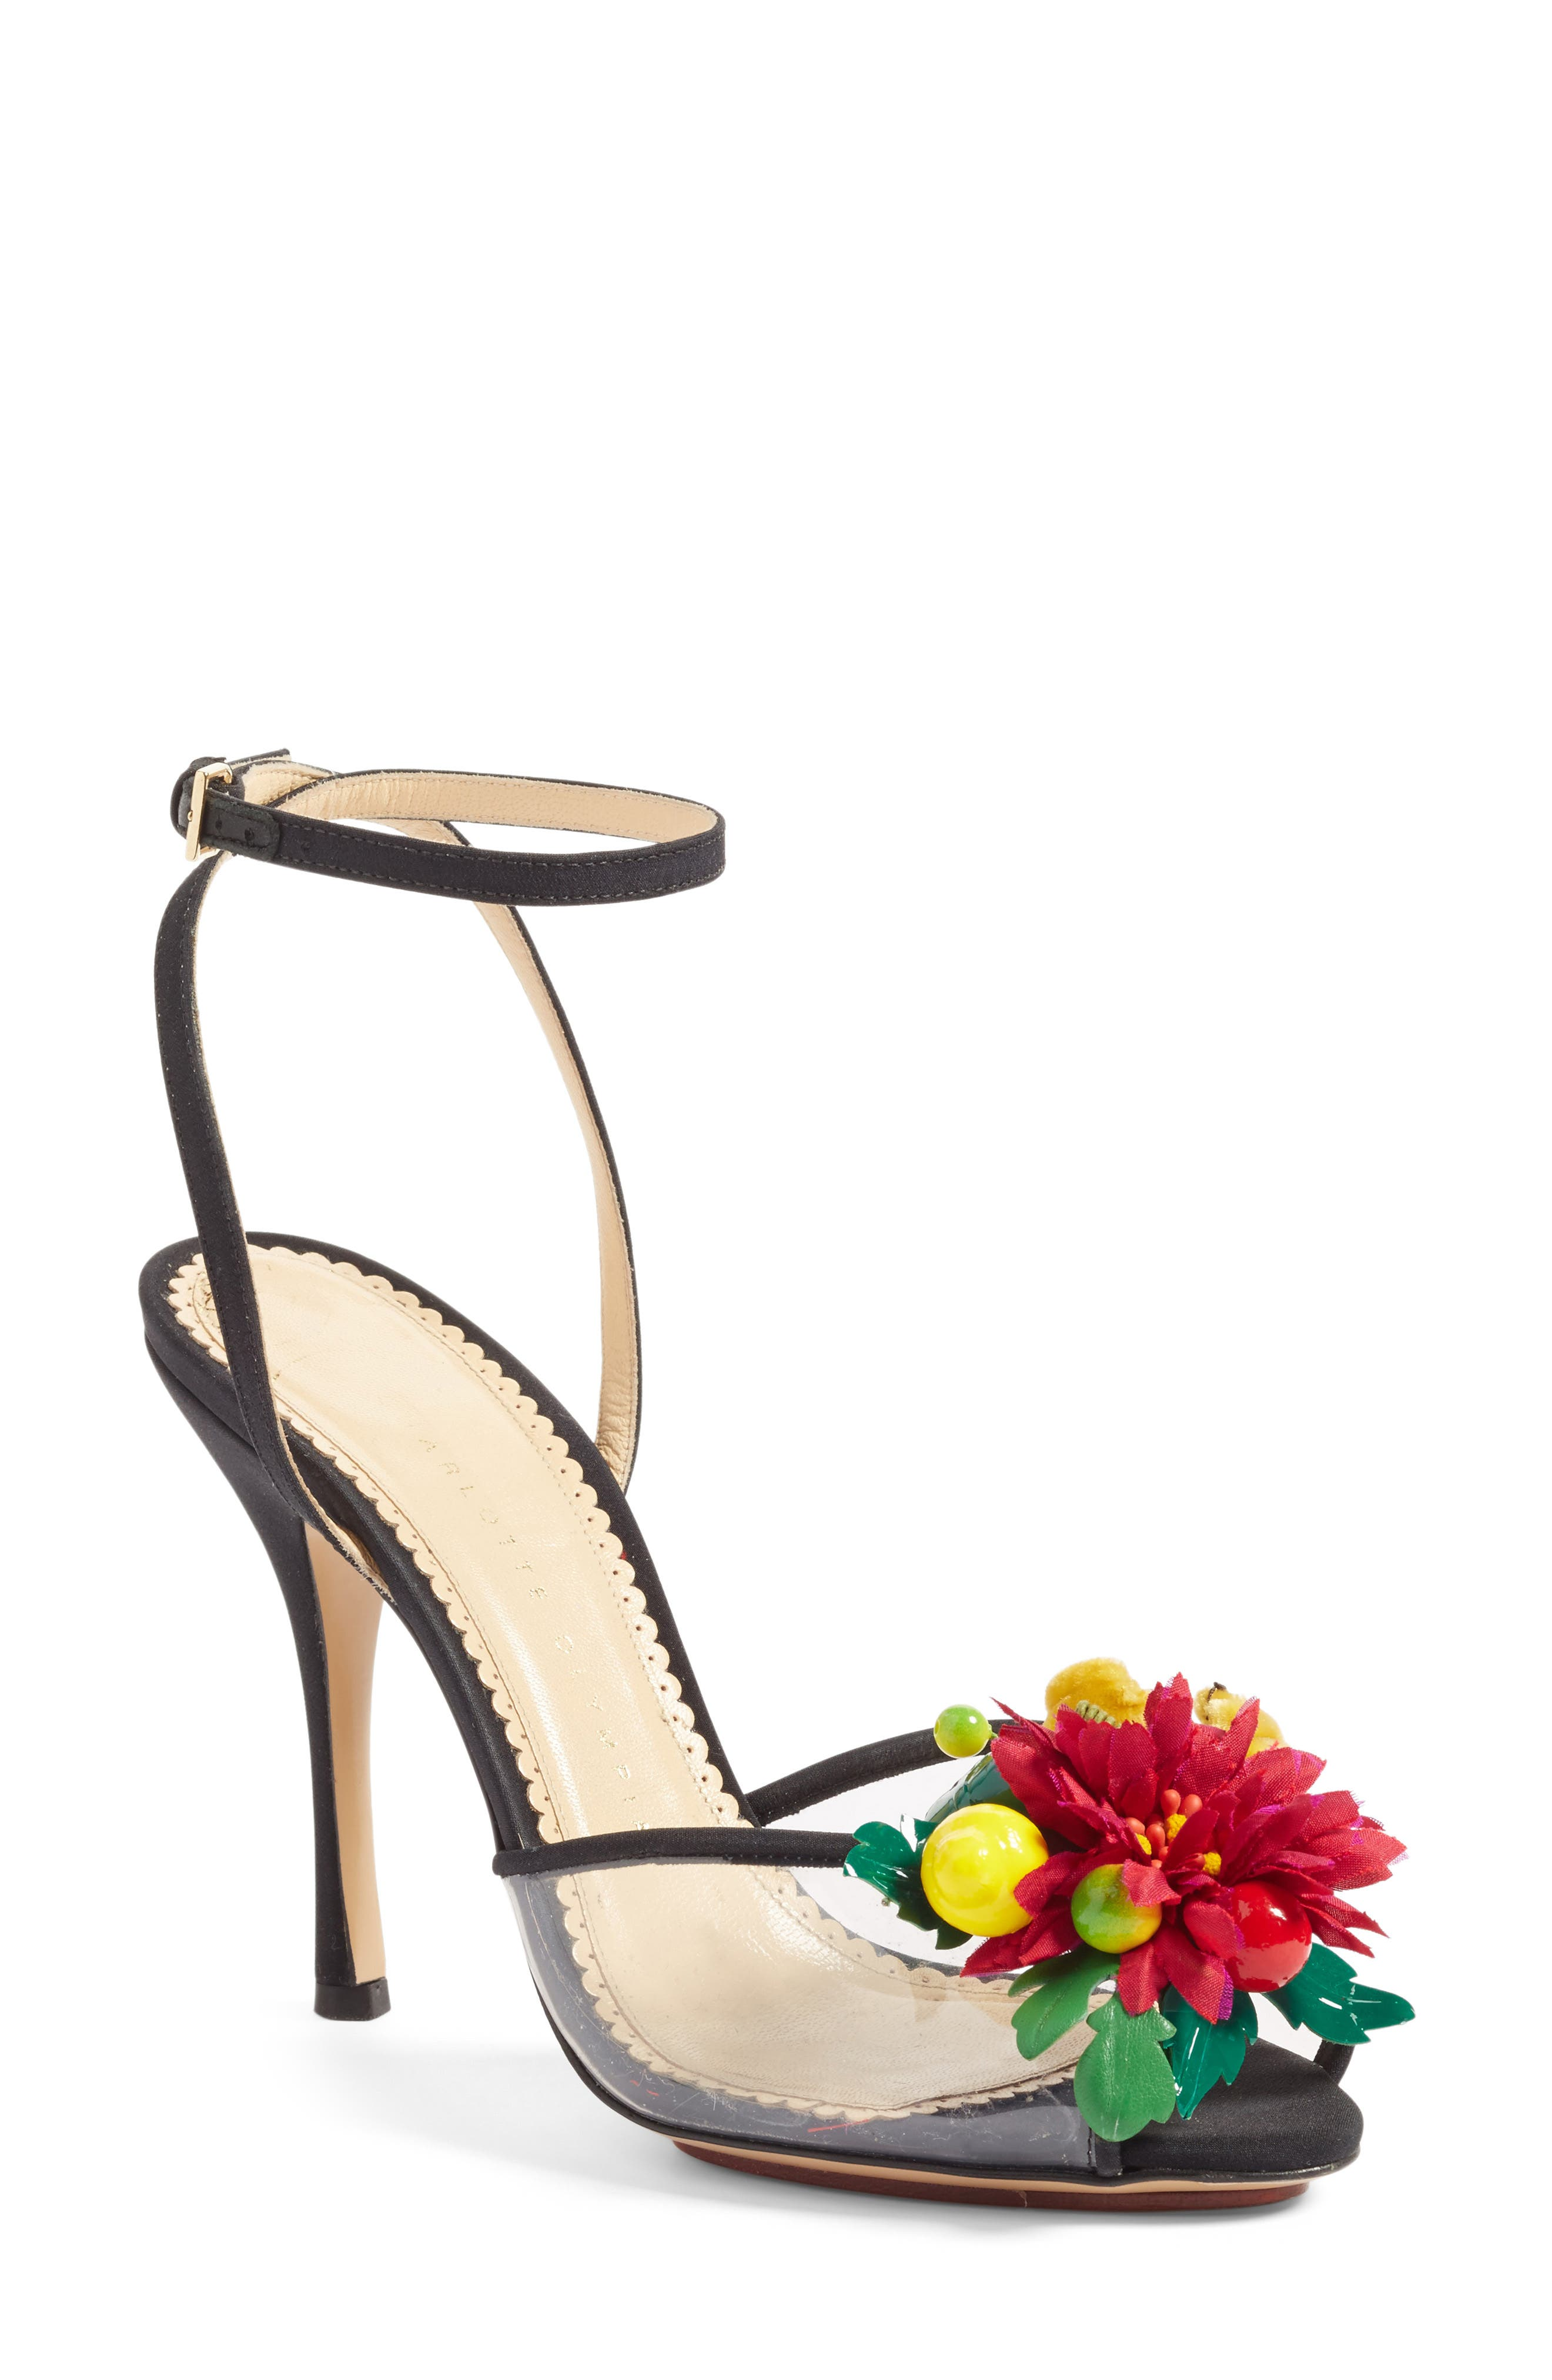 Alternate Image 1 Selected - Charlotte Olympia Tropicana Ankle Strap Sandal (Women)